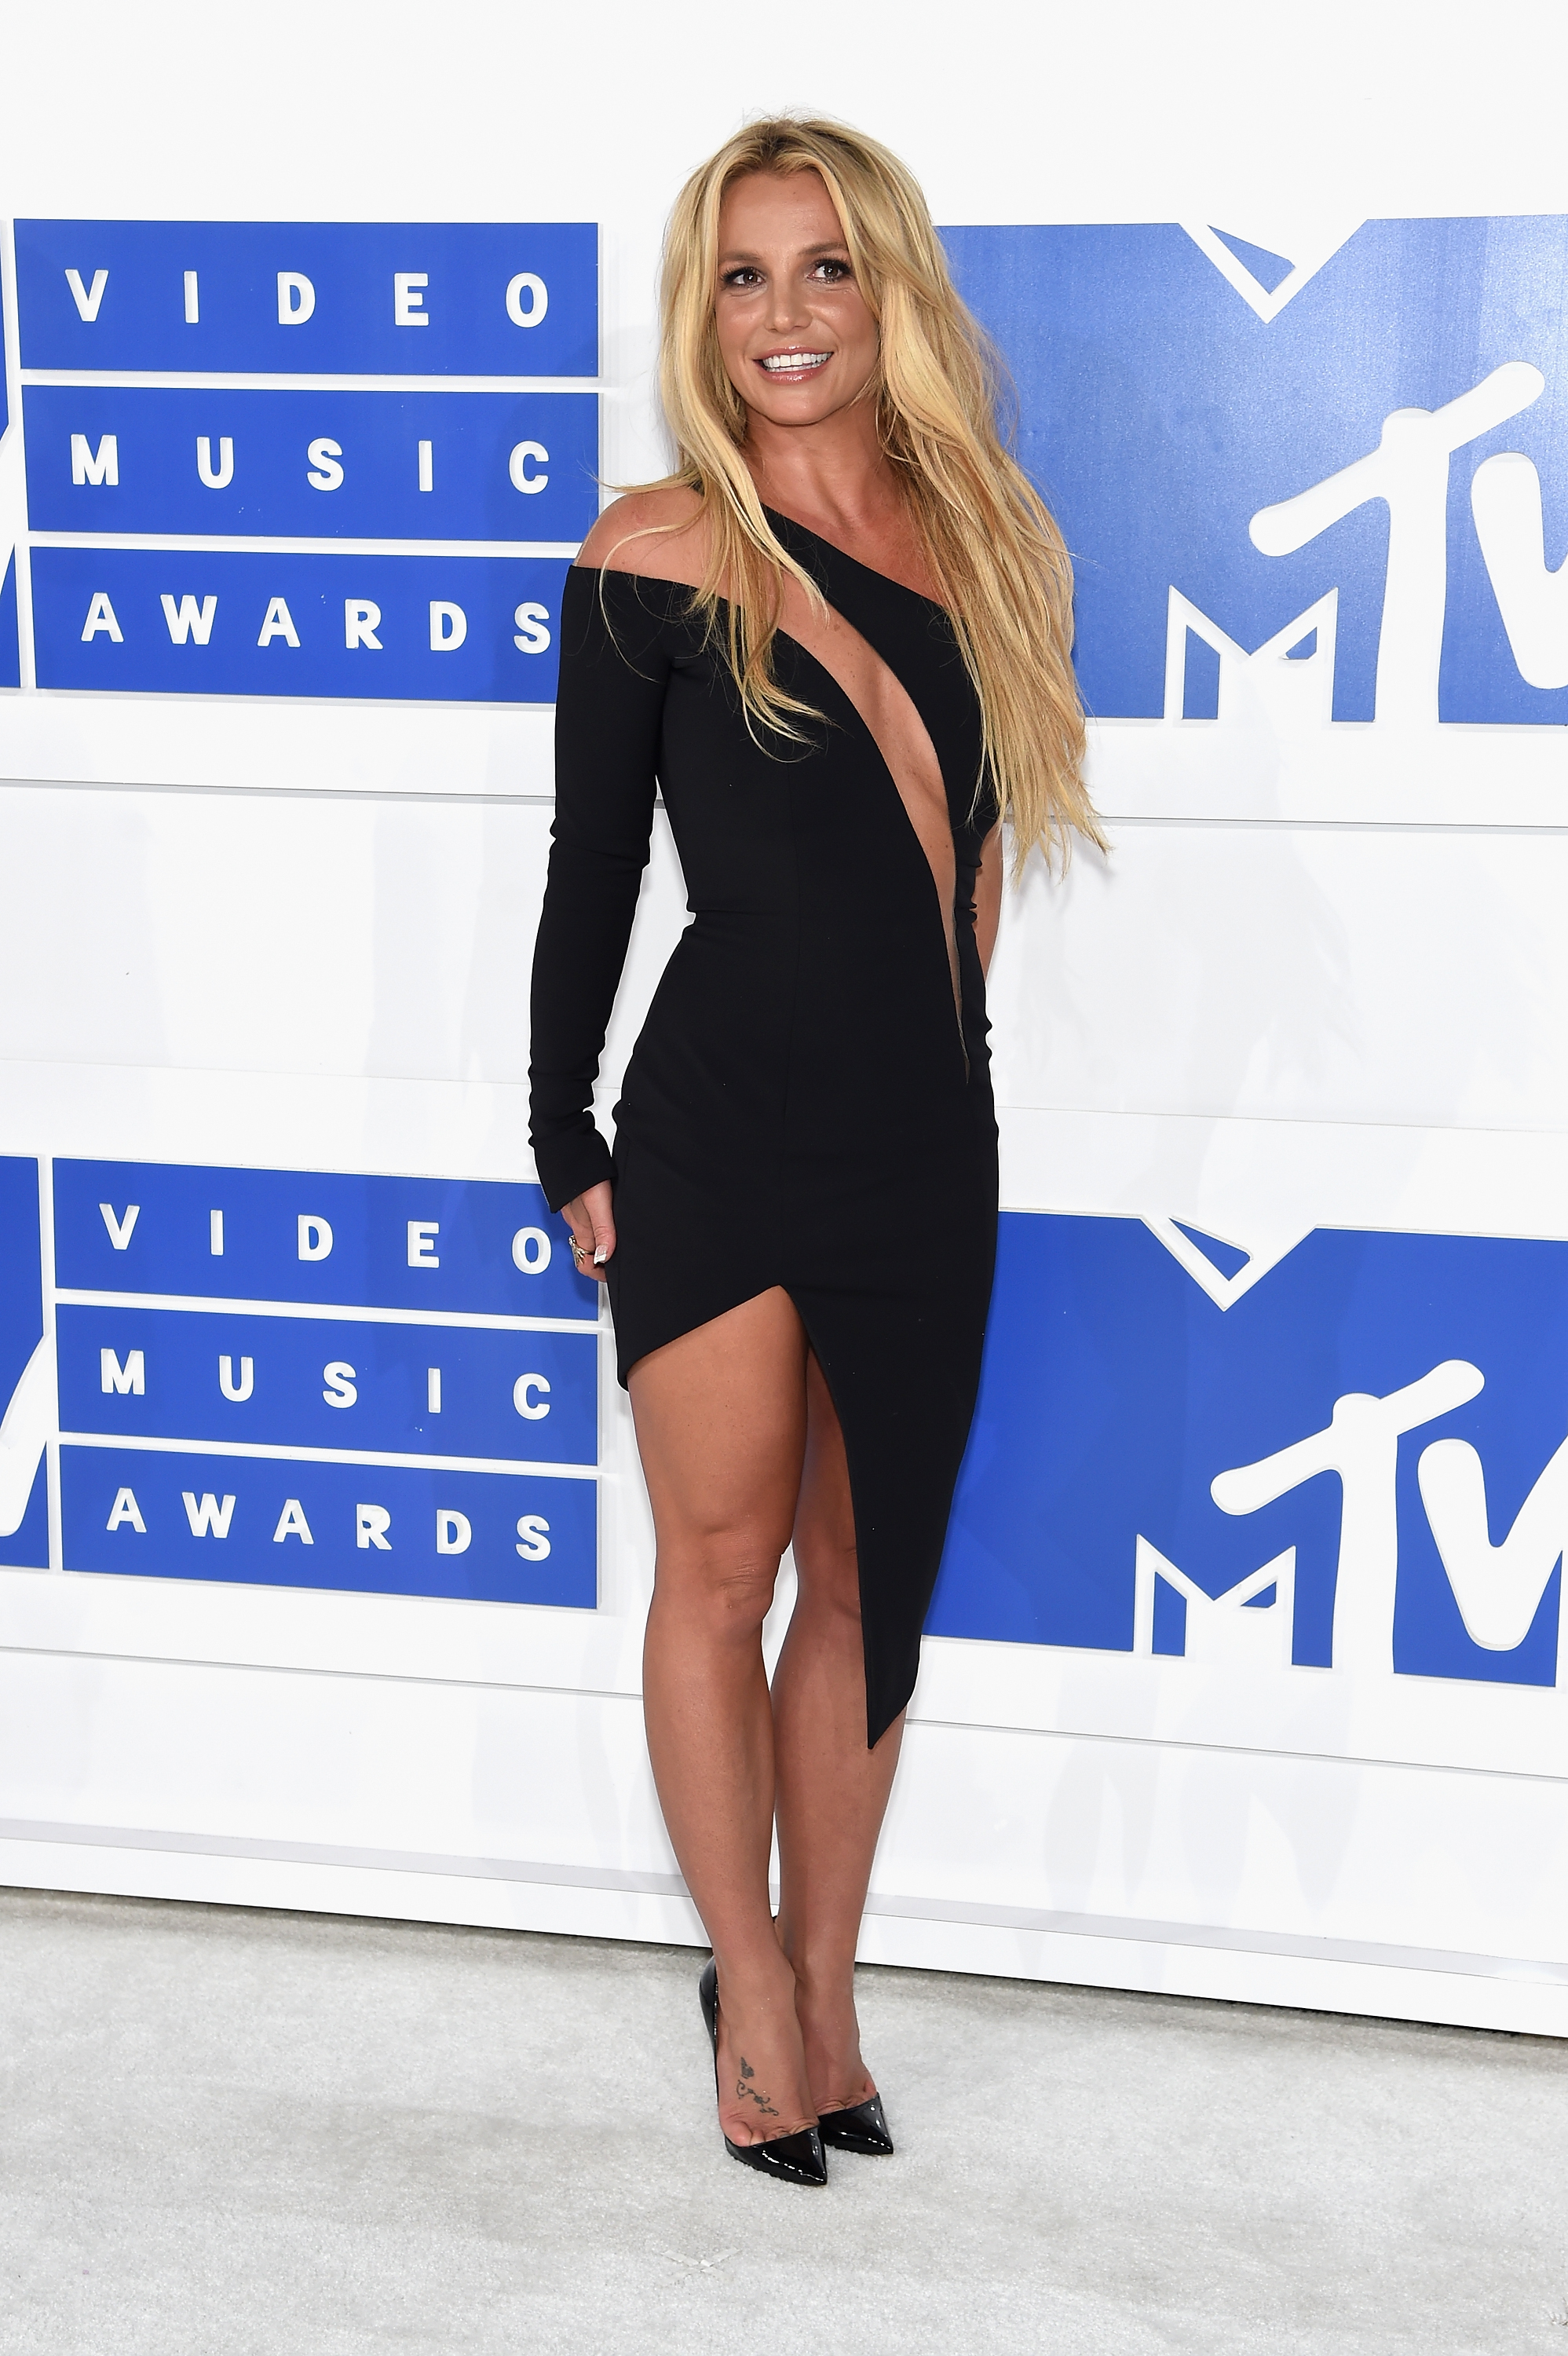 Britney Spears attends the 2016 MTV Video Music Awards at Madison Square Garden on Aug. 28, 2016 in New York City.